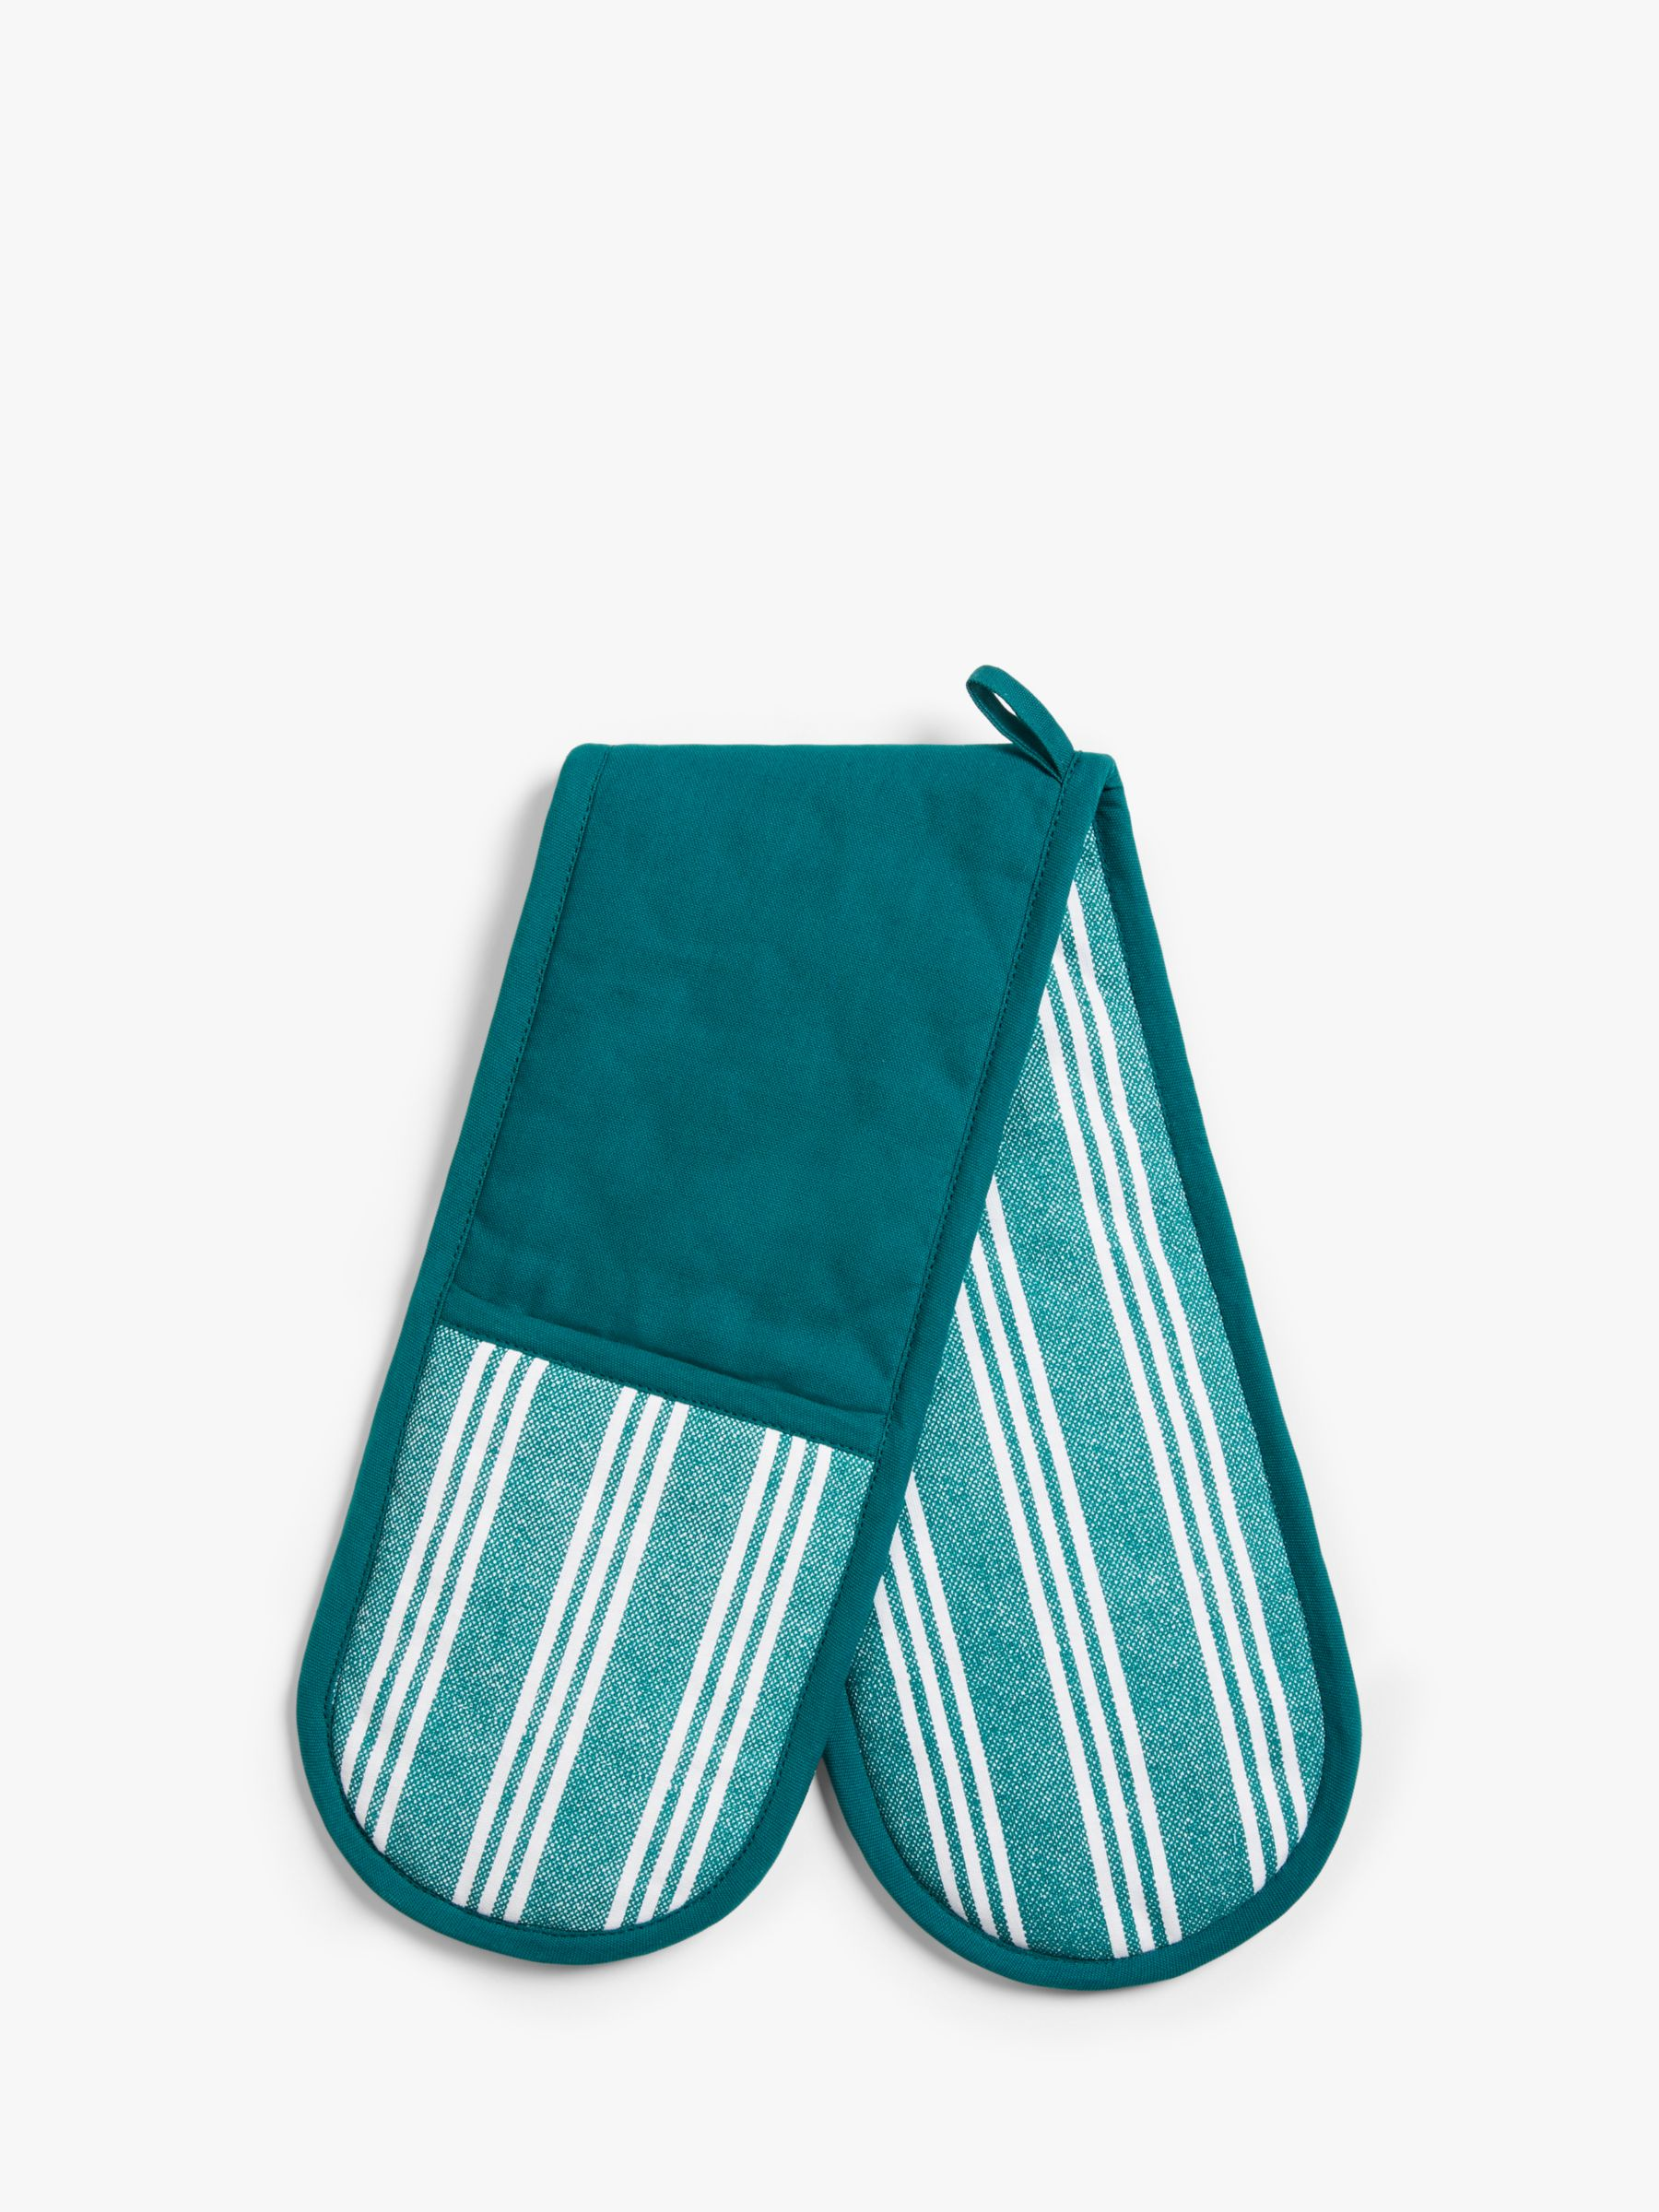 John Lewis & Partners Striped Cotton Double Oven Glove, Teal